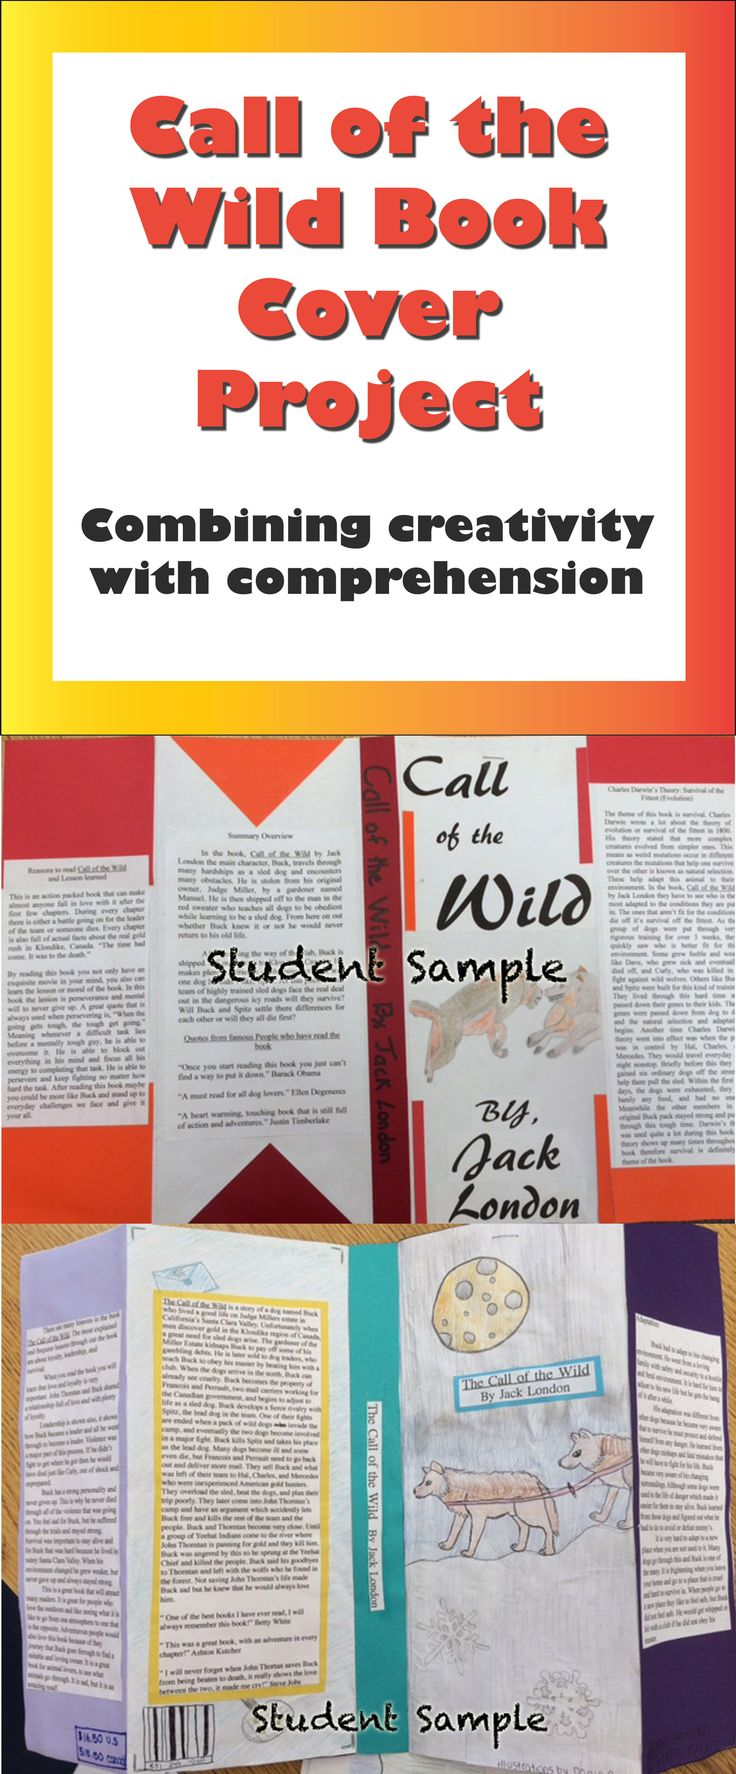 call of the wild book cover project  combining creativity with comprehension